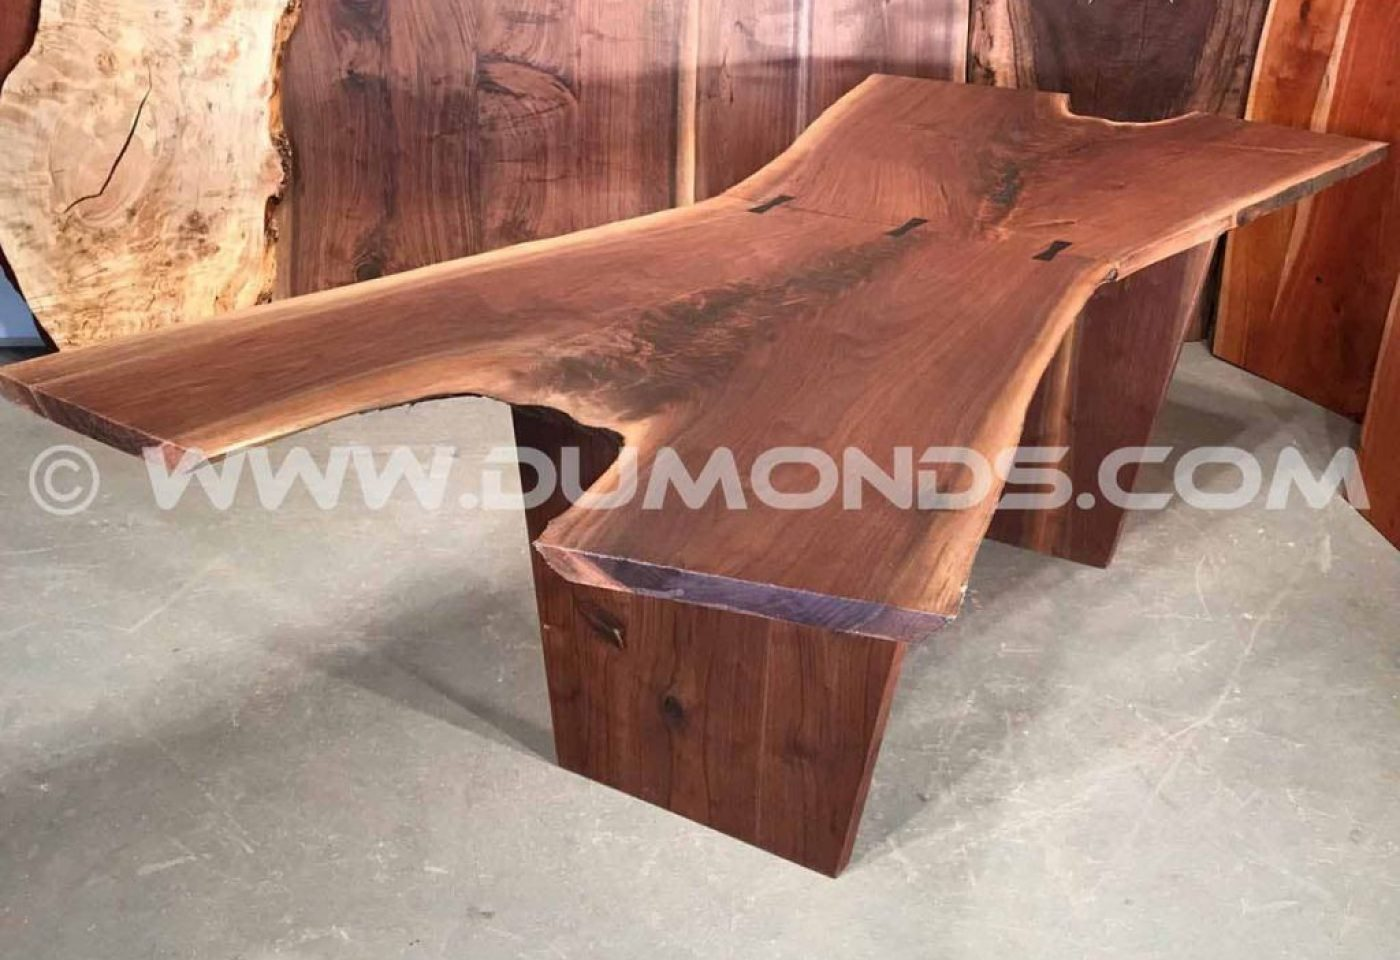 DOUBLE WALNUT CROTCH LIVE EDGE SLAB TABLE WITH WALNUT BASE